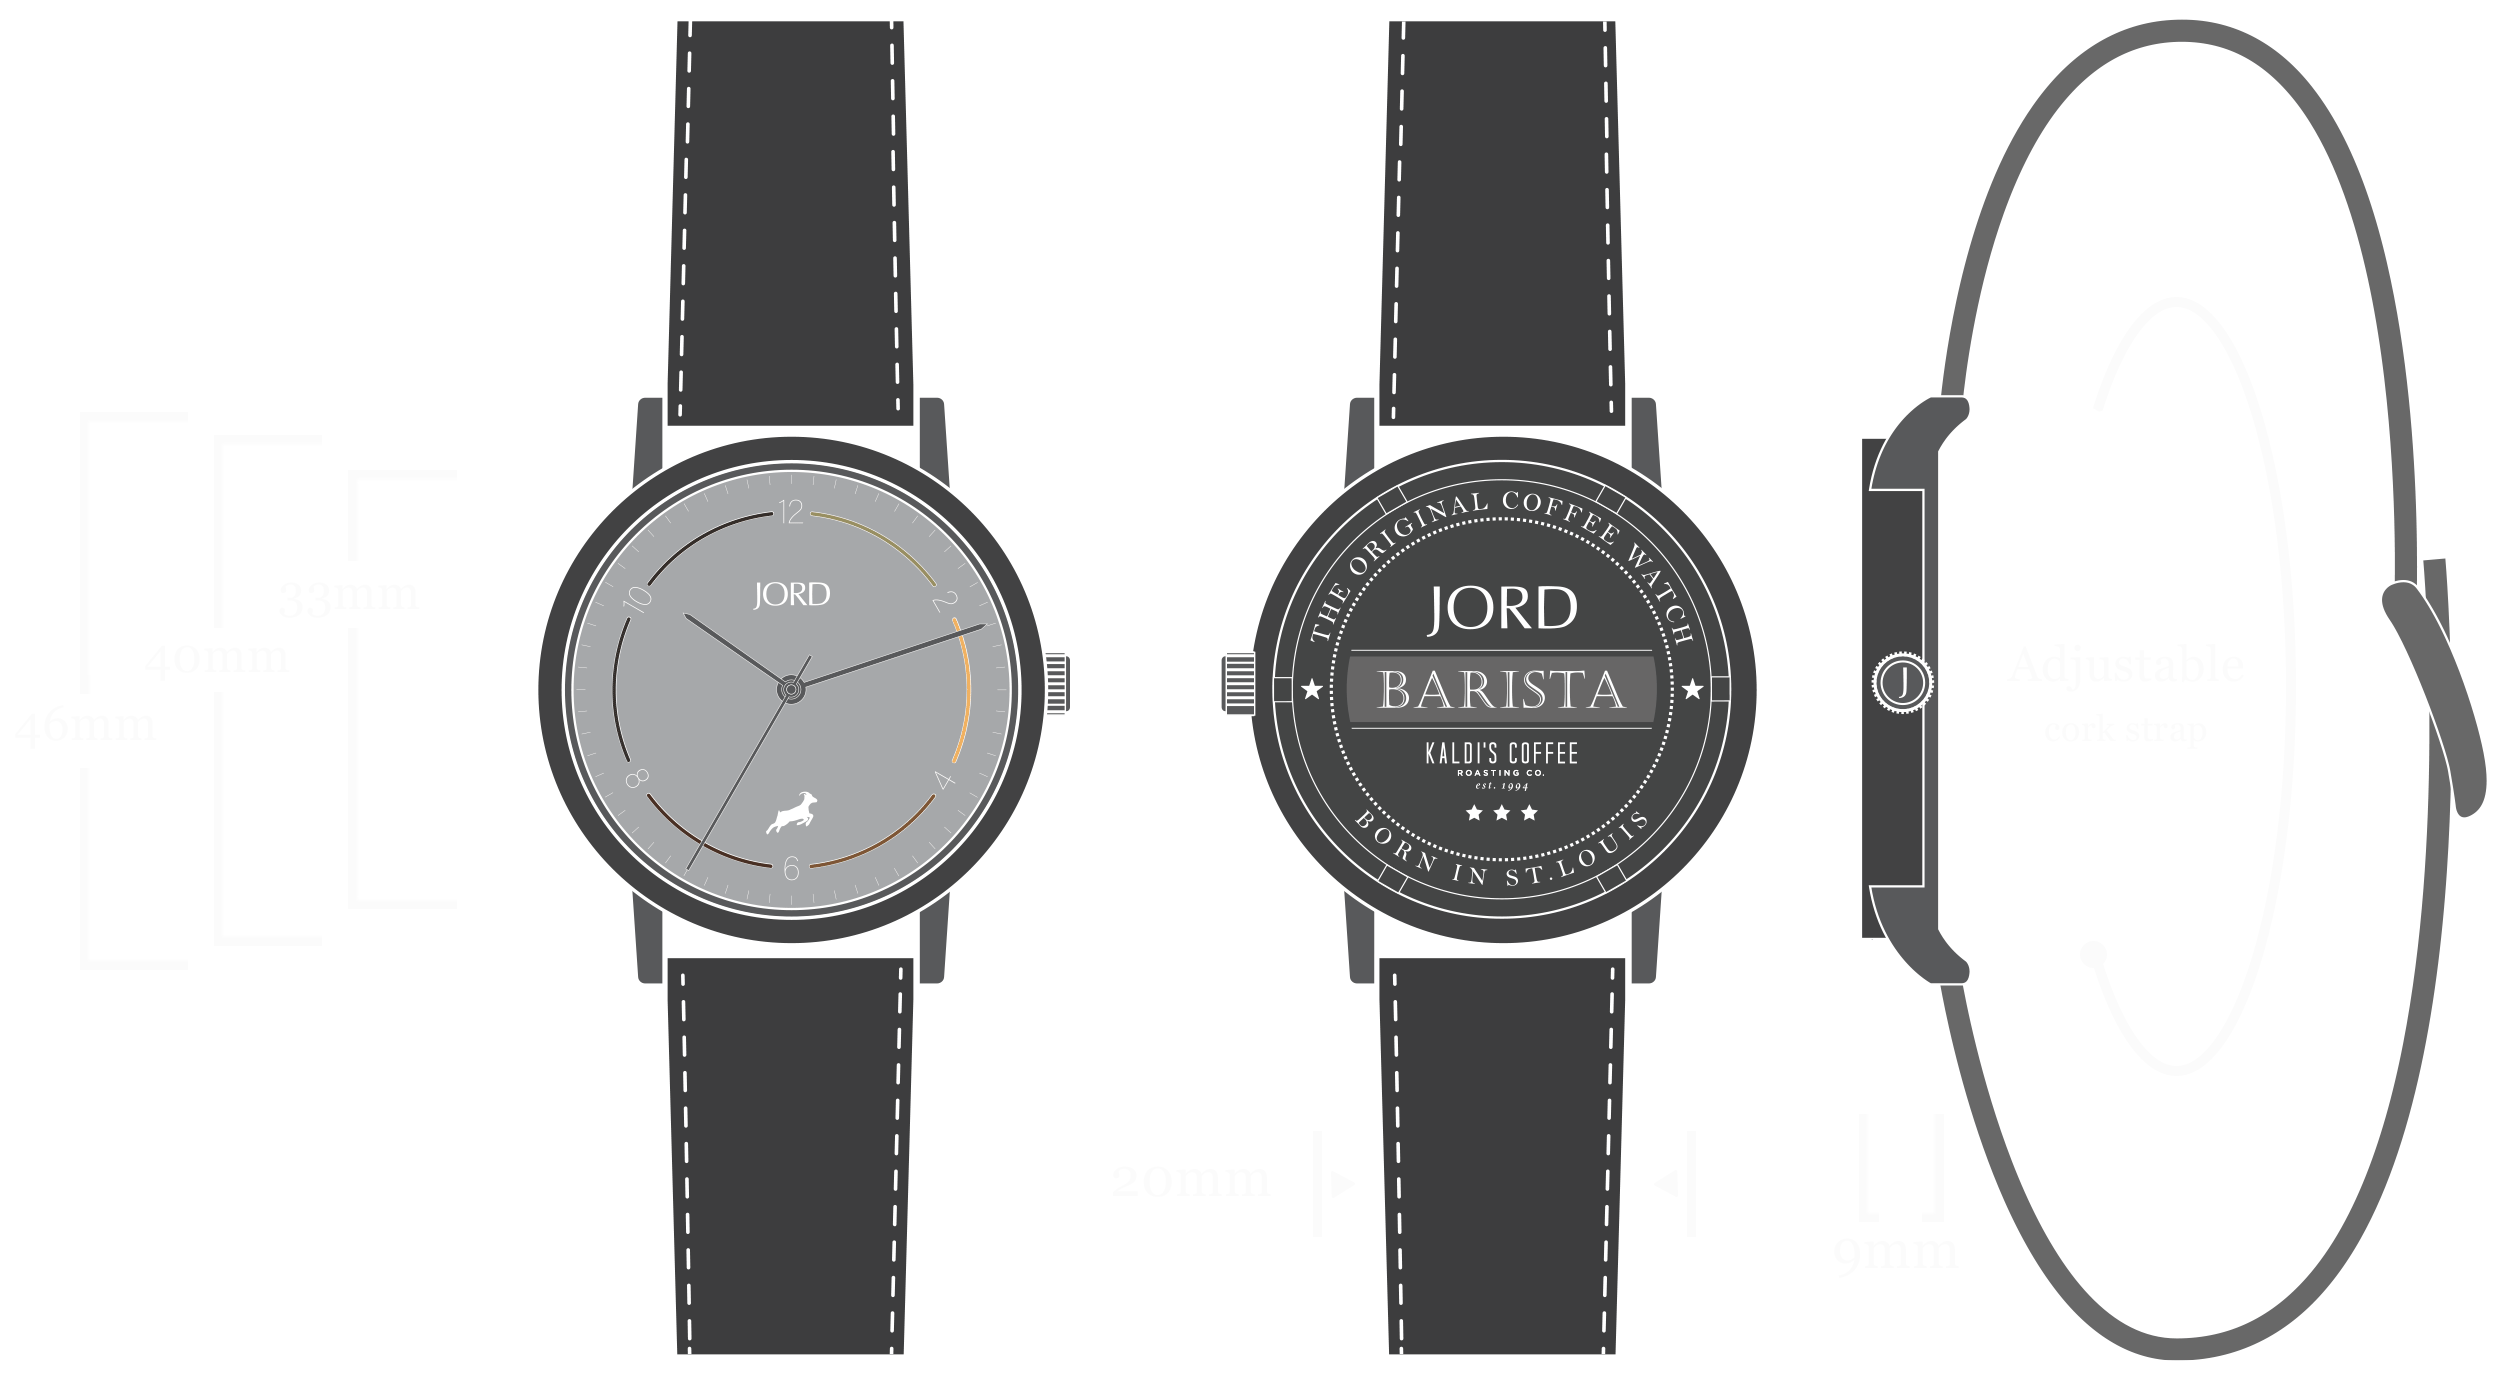 Barista - Kaldis Edition Watch Diagram